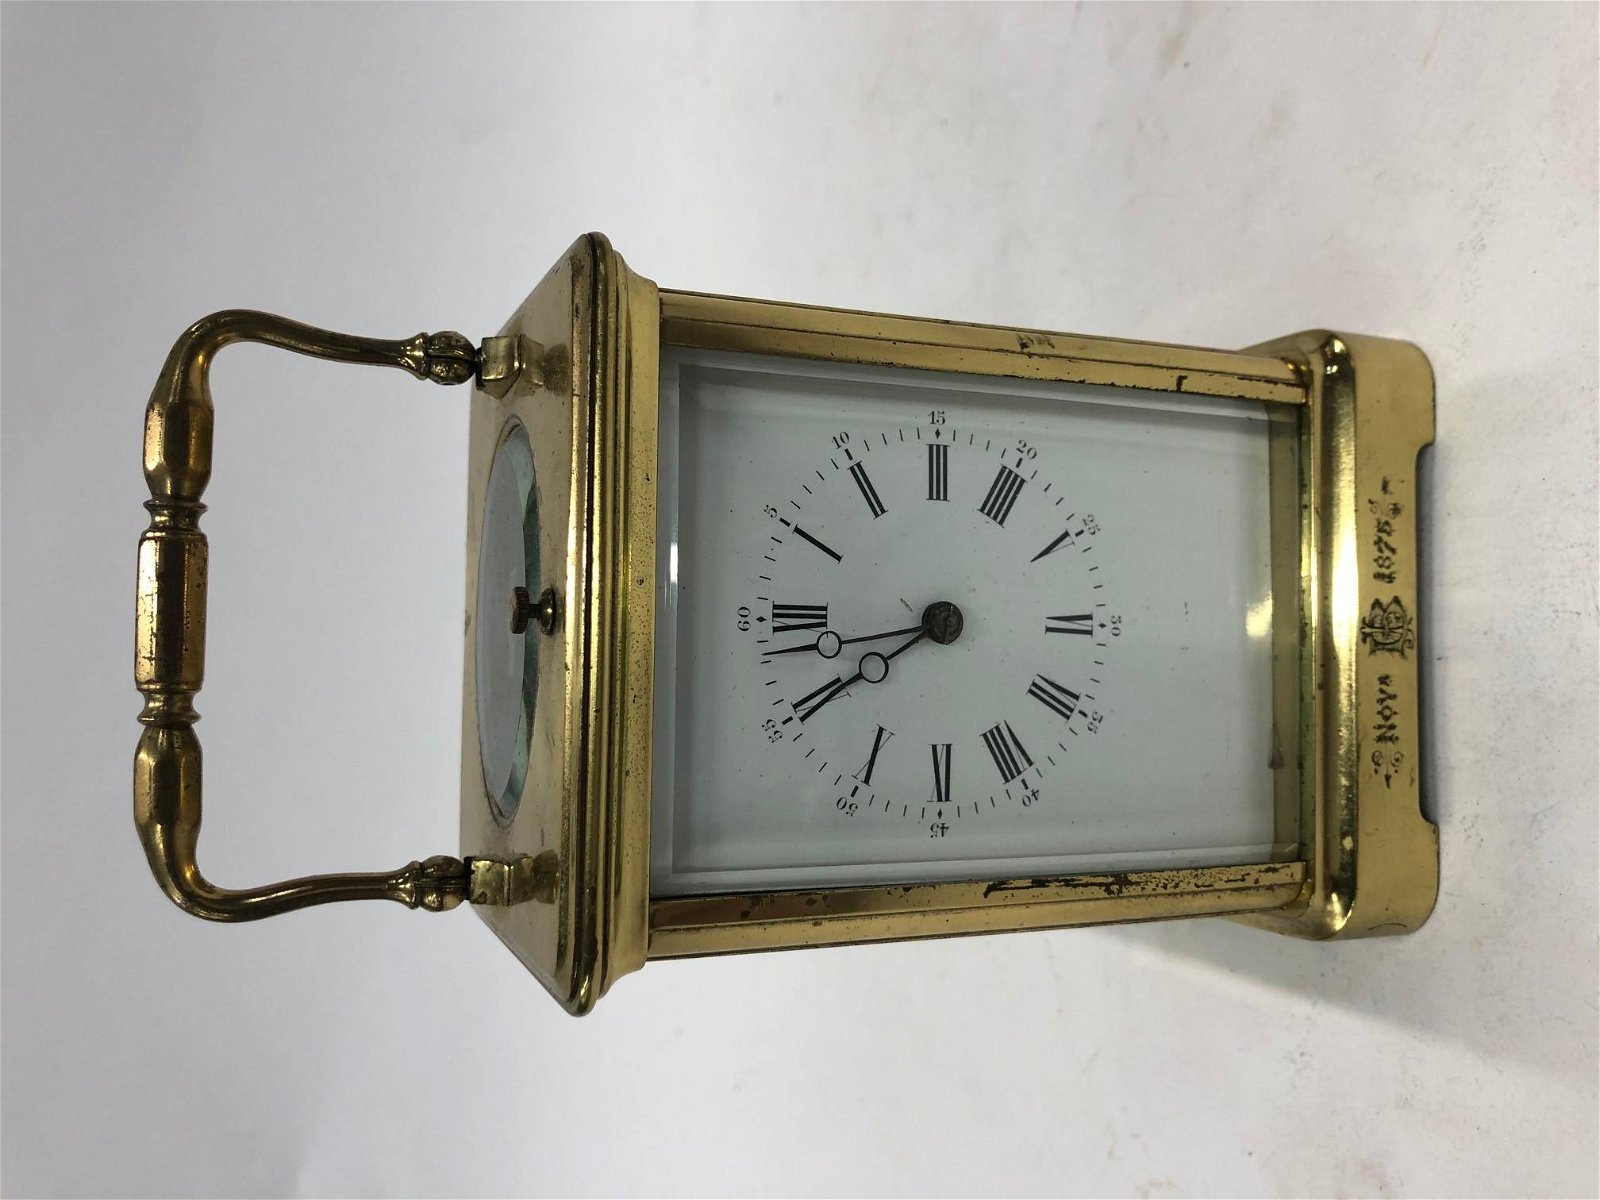 A 19th century French brass carriage clock, the two